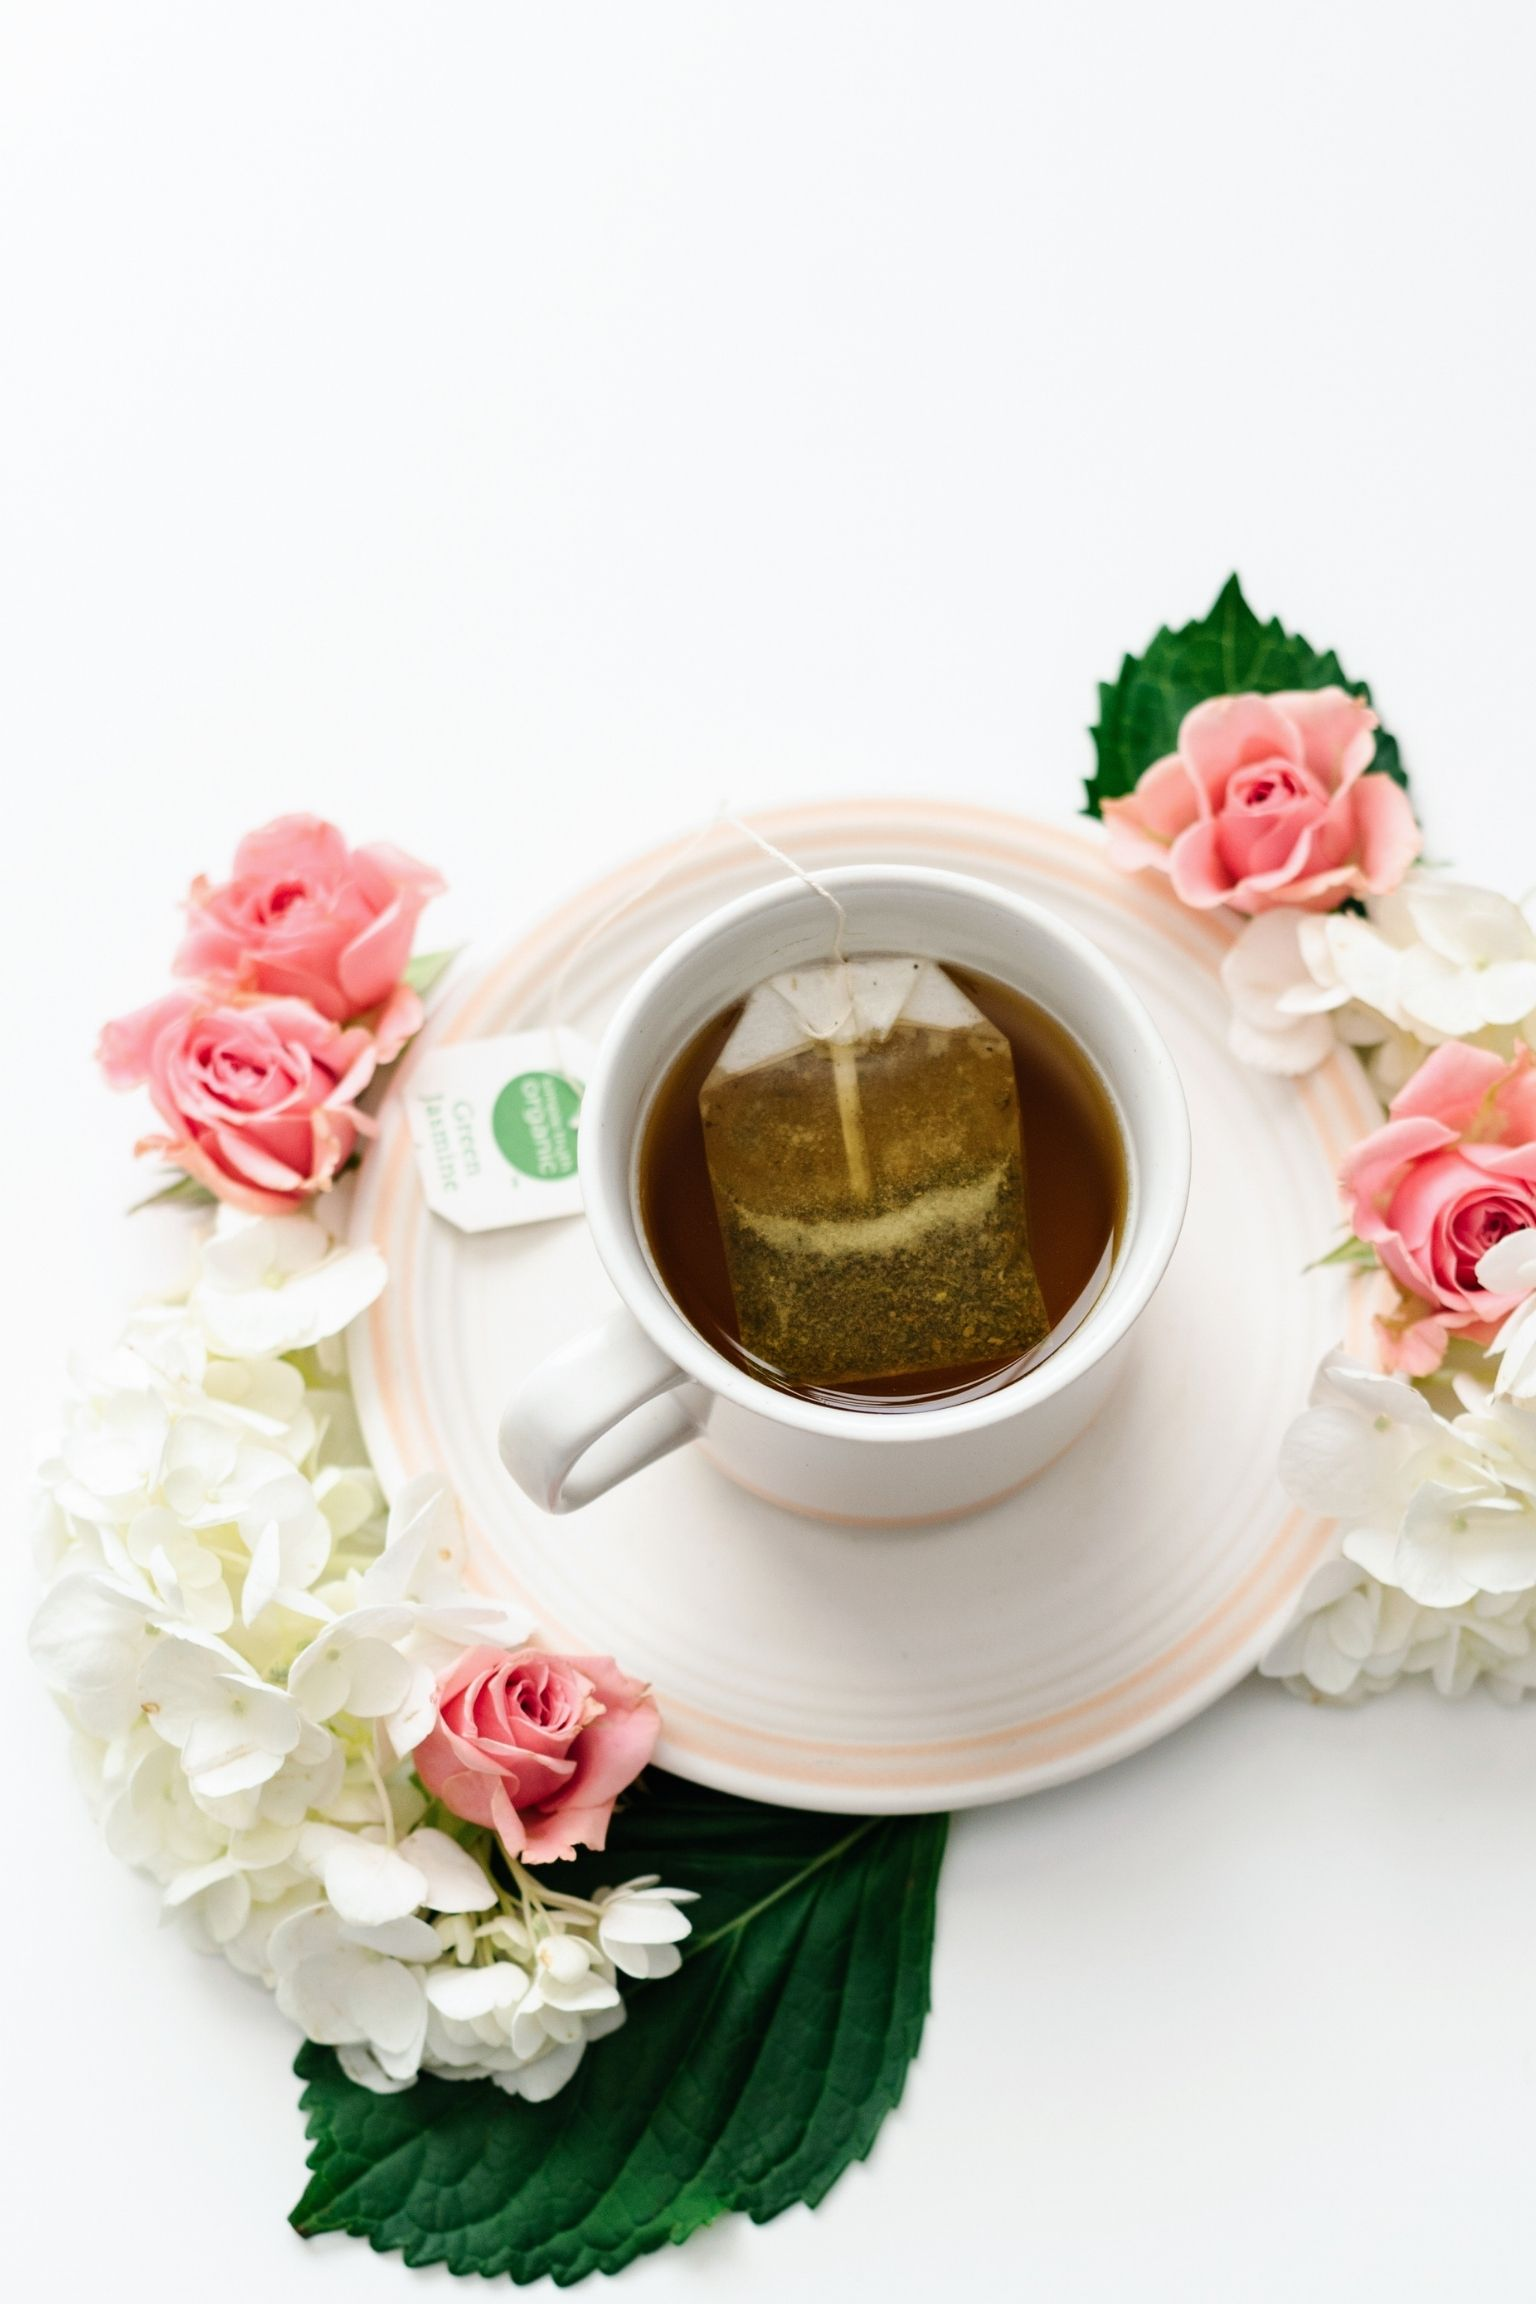 relaxing picture of spring flowers with a cup of tea brewing